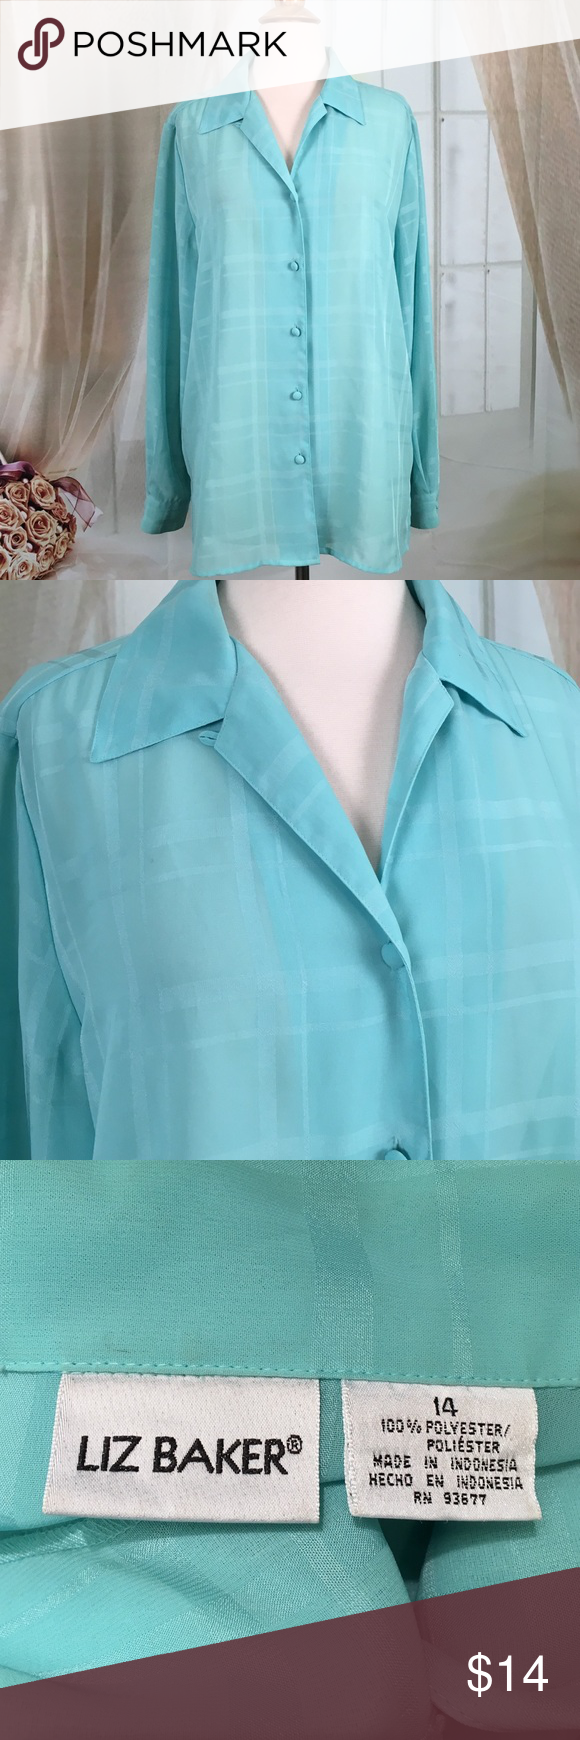 """Liz Backer Teal Long Sleeved Blouse Beautiful teal longsleeved blouse. 100% polyester. Great condition. Size 14. Bust 44 and length 28"""".  All measurements are approximate. Offers are always welcome.  TB107 LOC-1 Liz Baker Tops Blouses"""